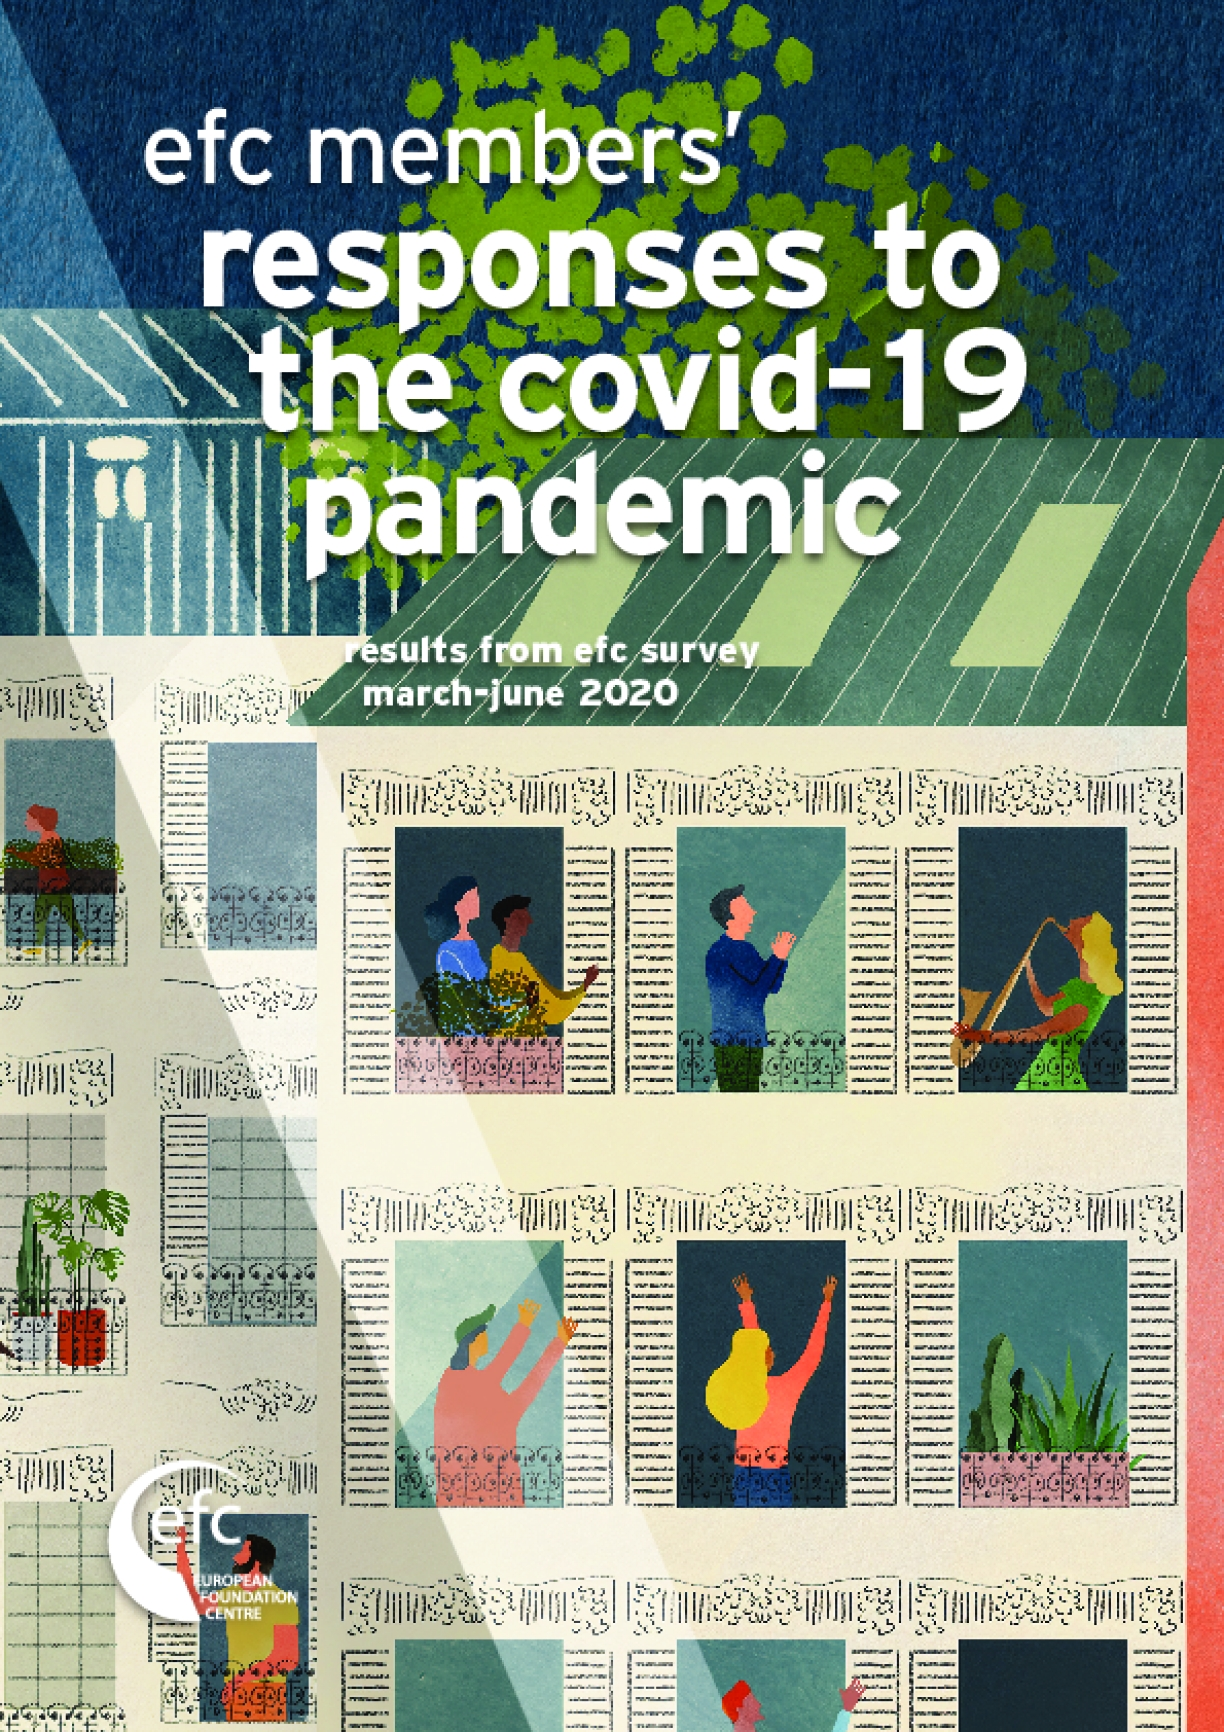 EFC Members' Responses to the Covid-19 Pandemic : Results from EFC Survey March-June 2020